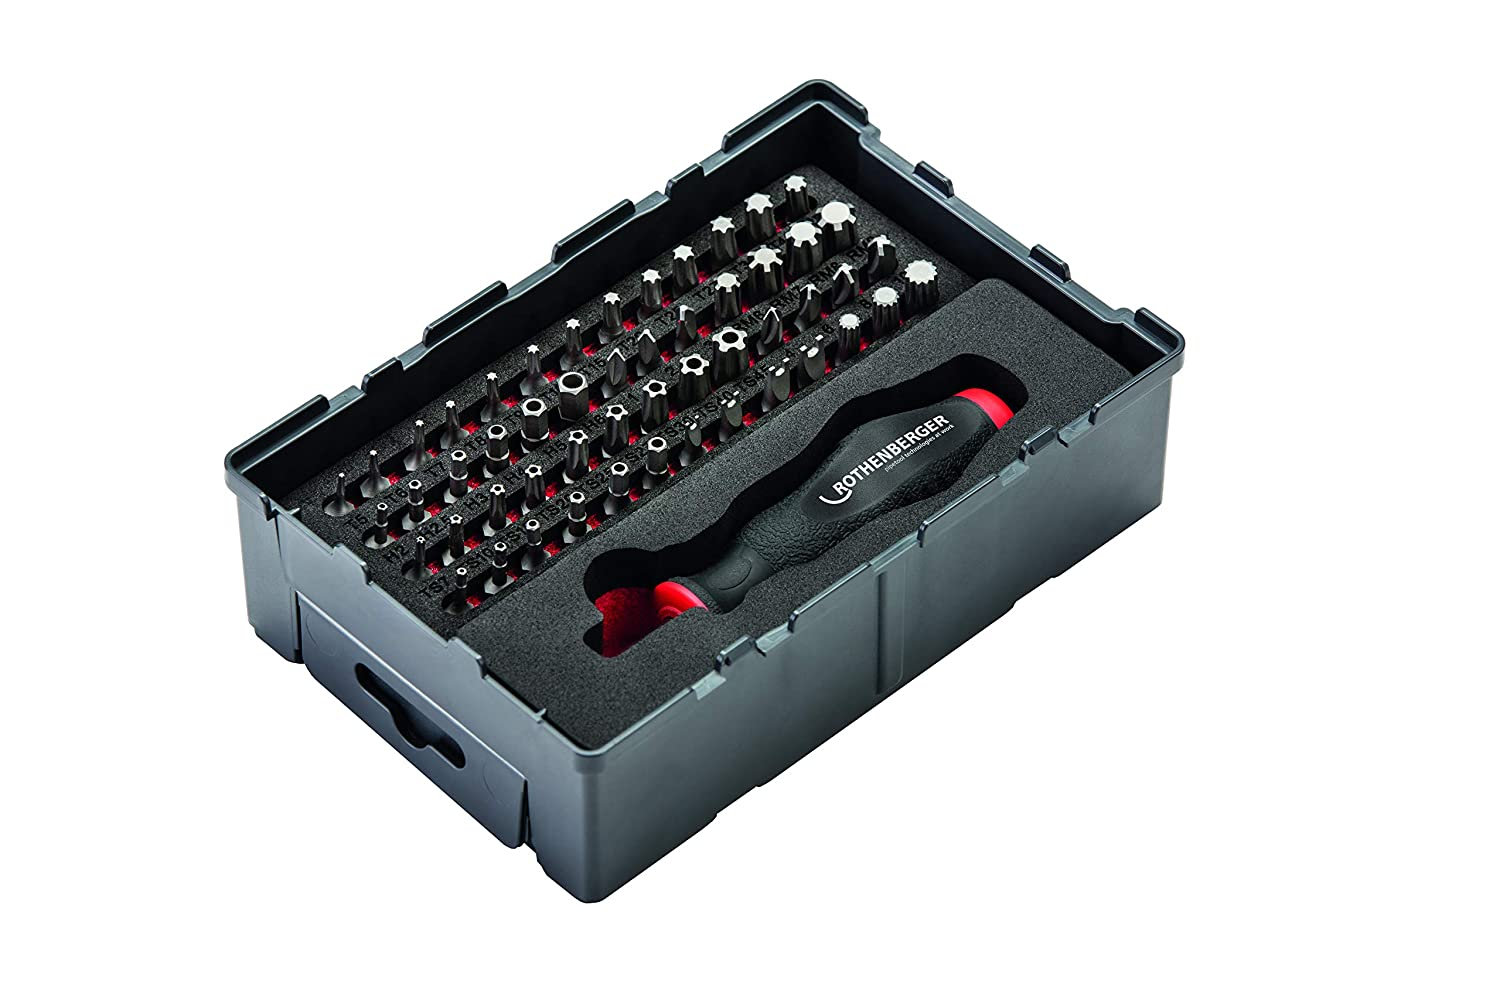 'Rothenberger 1000002181  Safety and Special bit Set 53  Pieces Tool Box 1/4  for Wall Installations and Small Electronics | Reusable Robox | 9  Different Types of Bit Including Torx & Pentalobe Grey